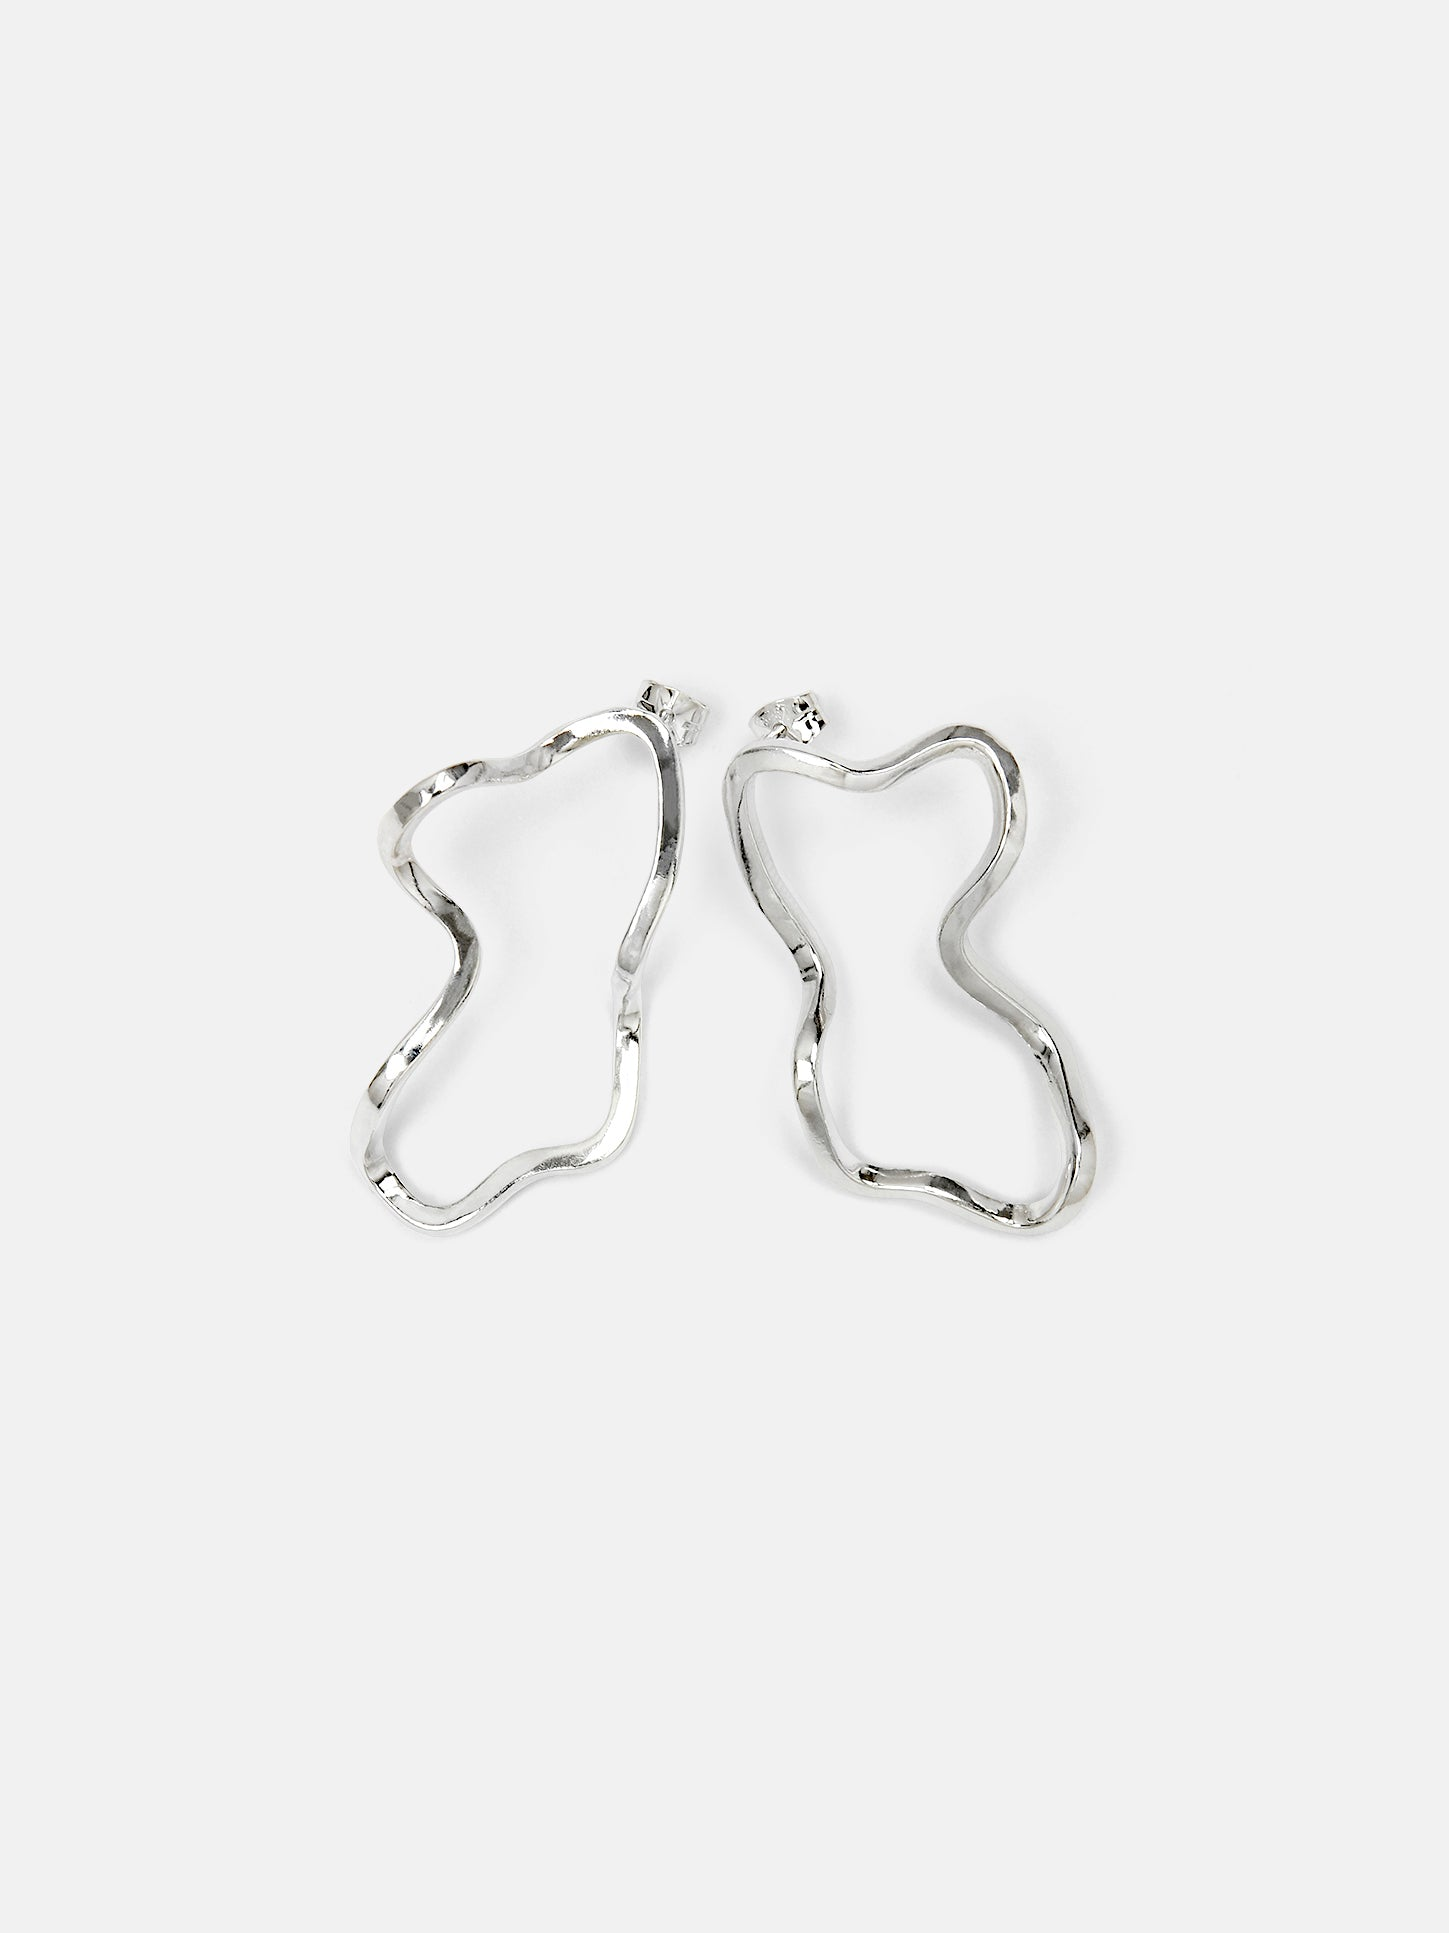 Dalga Earrings II, silver